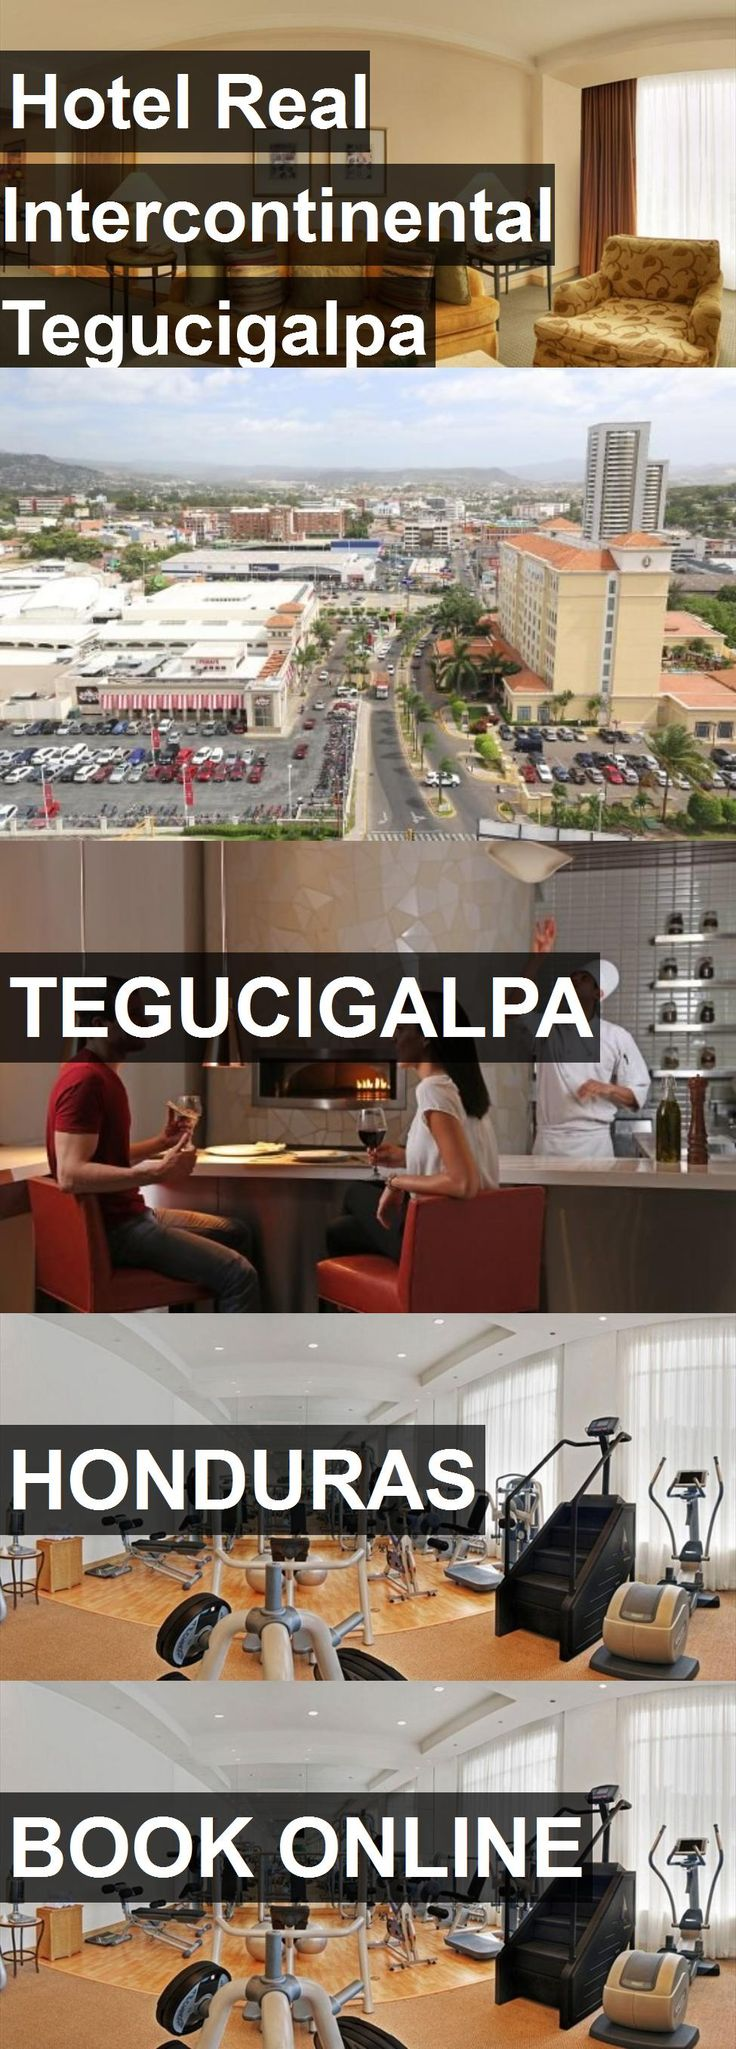 Hotel Hotel Real Intercontinental Tegucigalpa in Tegucigalpa, Honduras. For more information, photos, reviews and best prices please follow the link. #Honduras #Tegucigalpa #HotelRealIntercontinentalTegucigalpa #hotel #travel #vacation